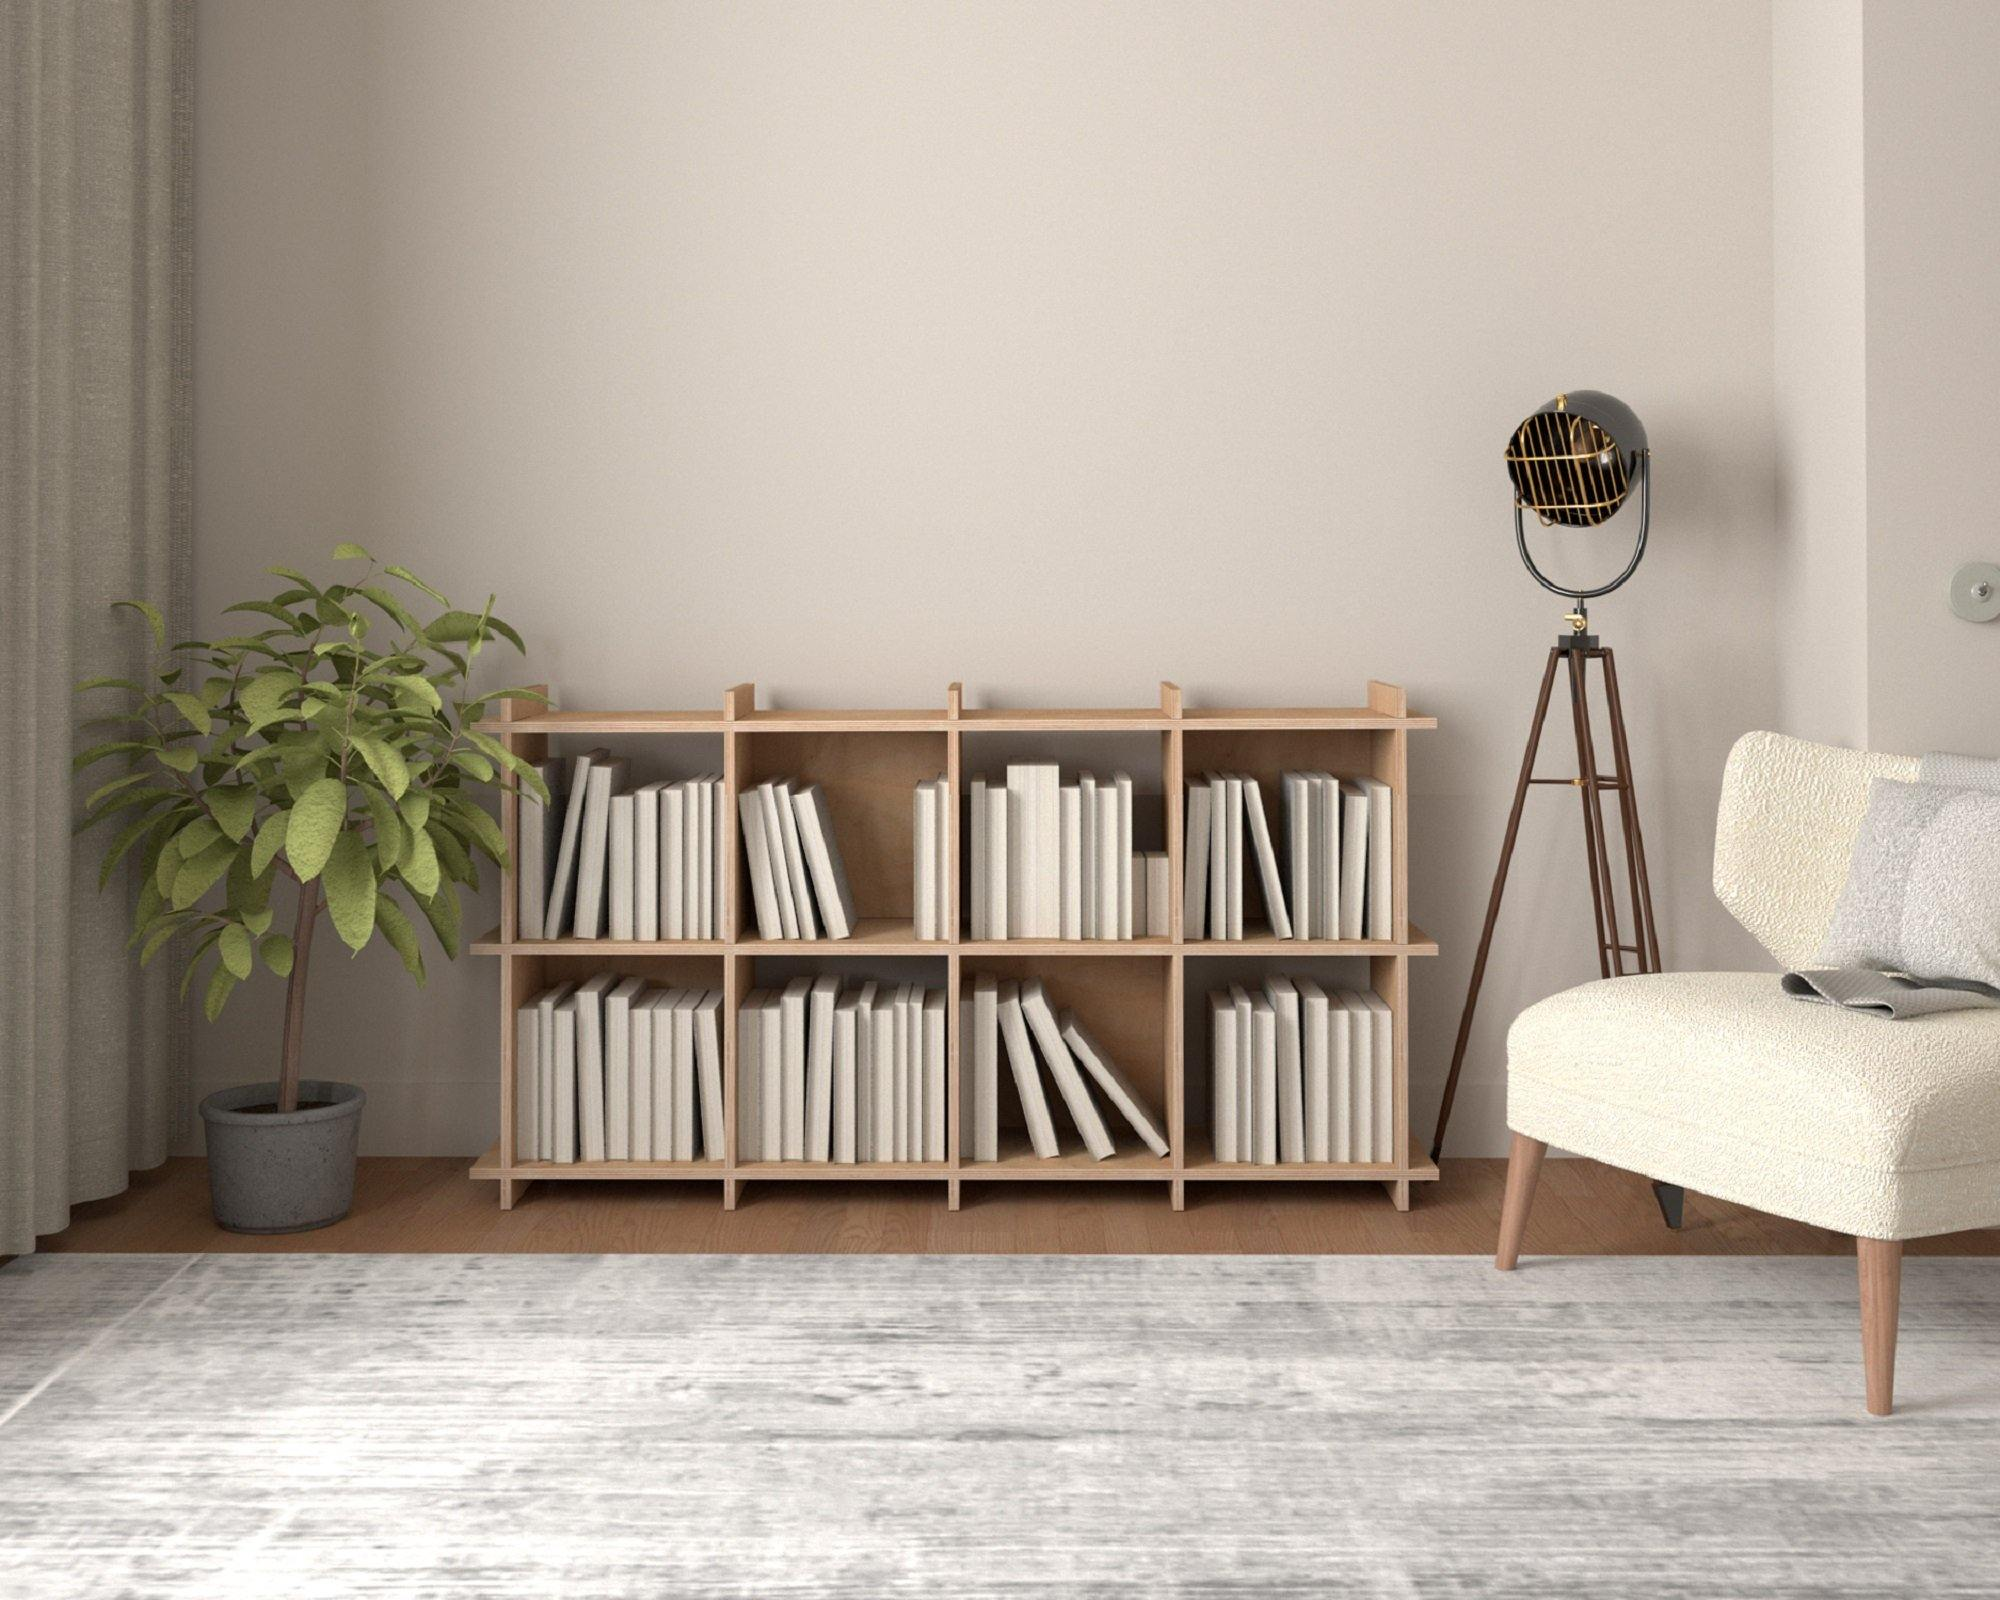 Custom Size Wooden Bookshelf - Plywood Bookcase,  4x2 (8 modules) - 149,5x80,5x33cm - skleia - custom size plywood furniture - handmade ergonomic ecologic plywood furniture